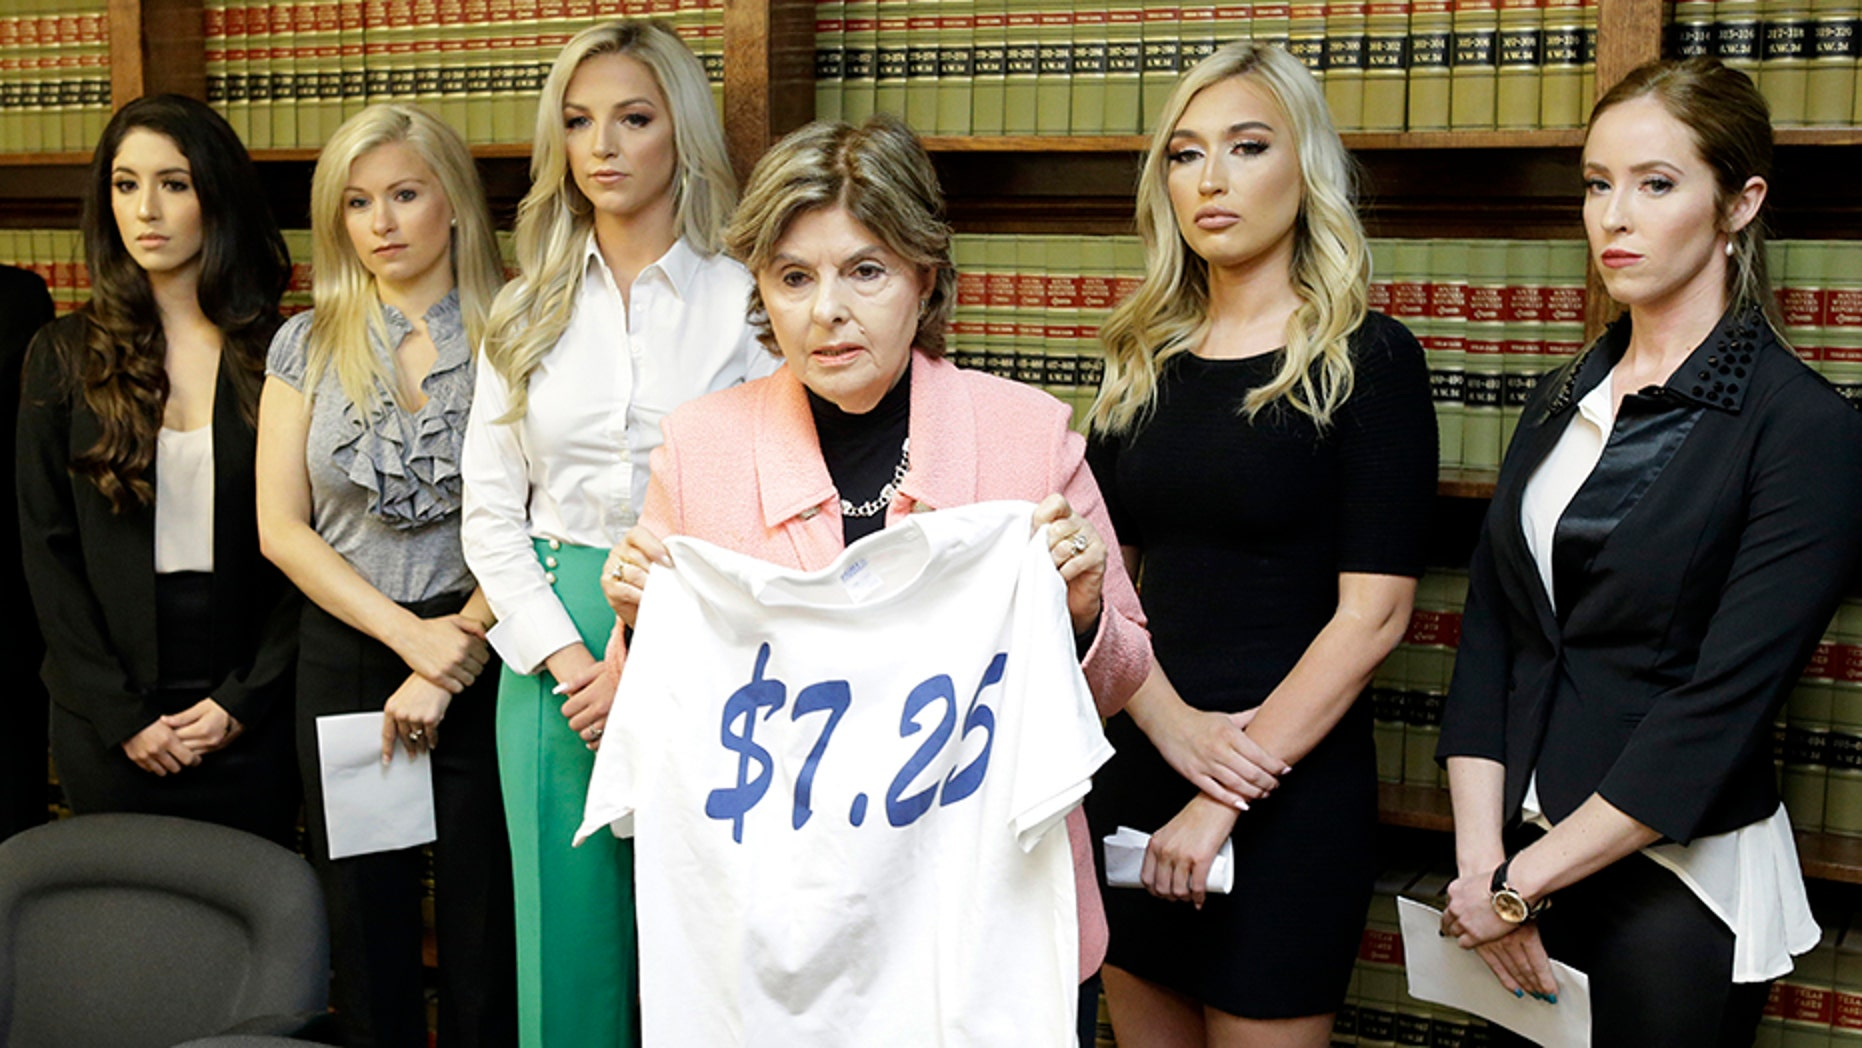 """Attorney Gloria Allred stands among former Houston Texans cheerleaders -- from left, Ashley Rodriguez, Morgan Wiederhold, Kelly Neuner, Hannah Turnbow and Ainsley Parish -- while holding up a shirt printed with """"$7.25,"""" the amount she says the former cheerleaders were paid per hour."""